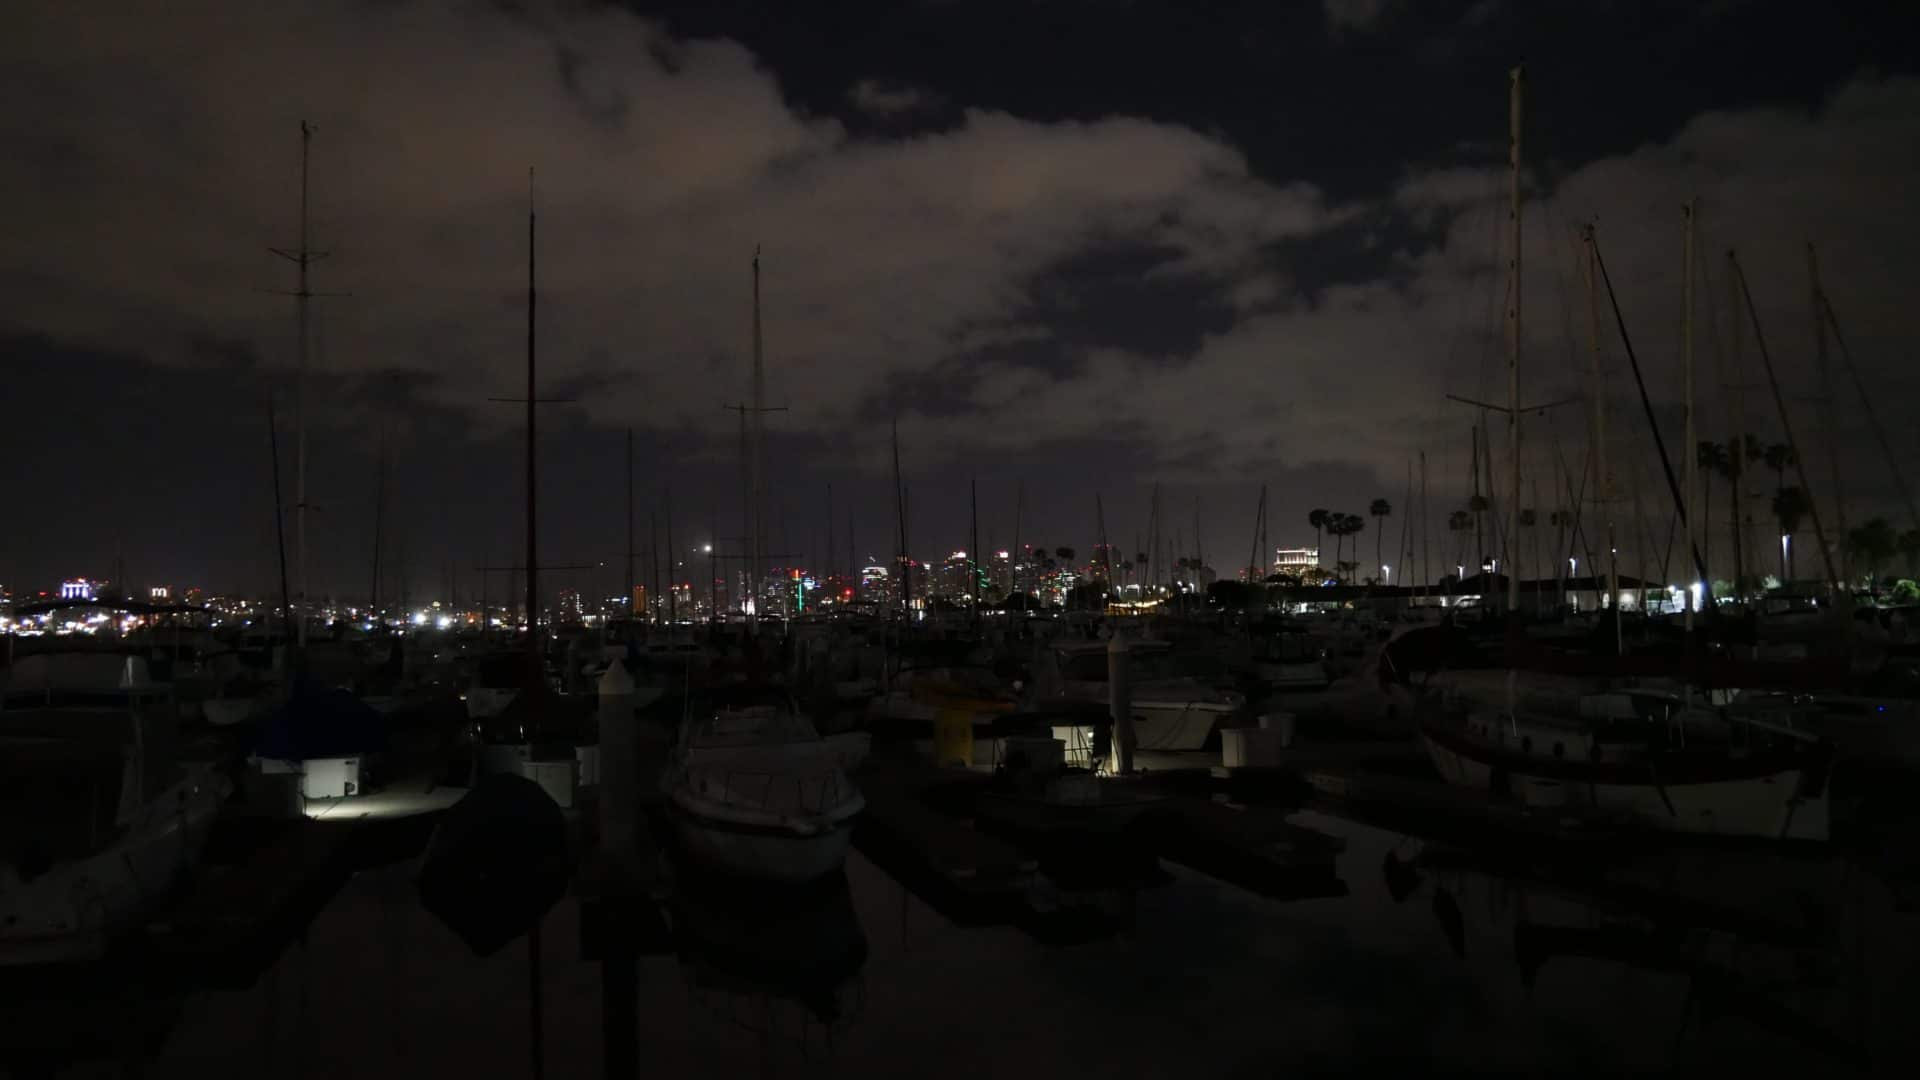 Night shot of the marina with San Diego in the background